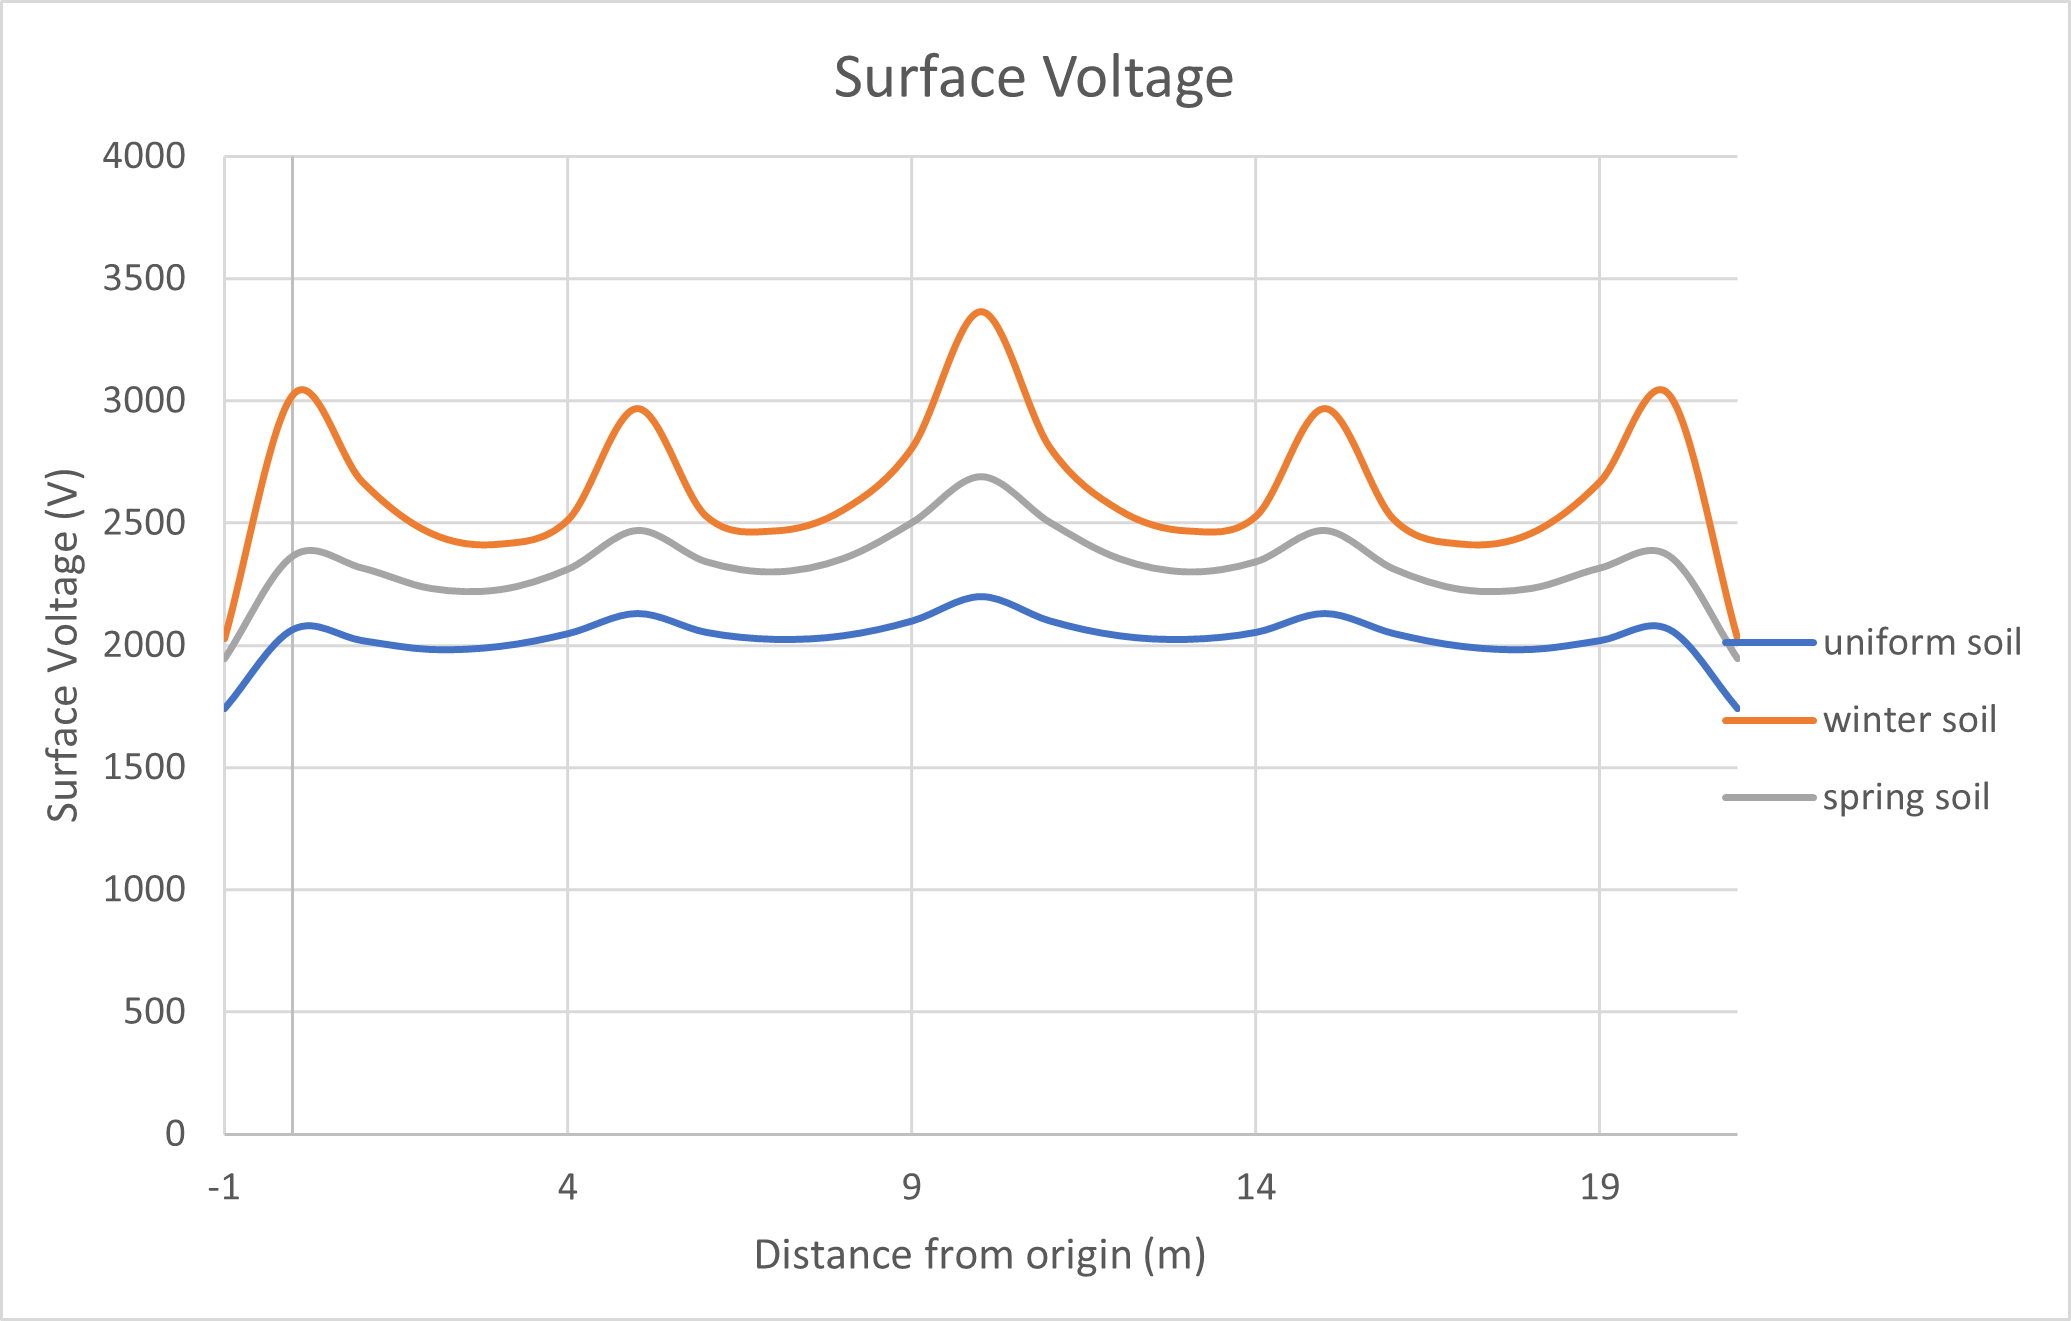 Figure 5 Surface voltages of a grid with rods. - Earth Grid Design for Frozen Soils